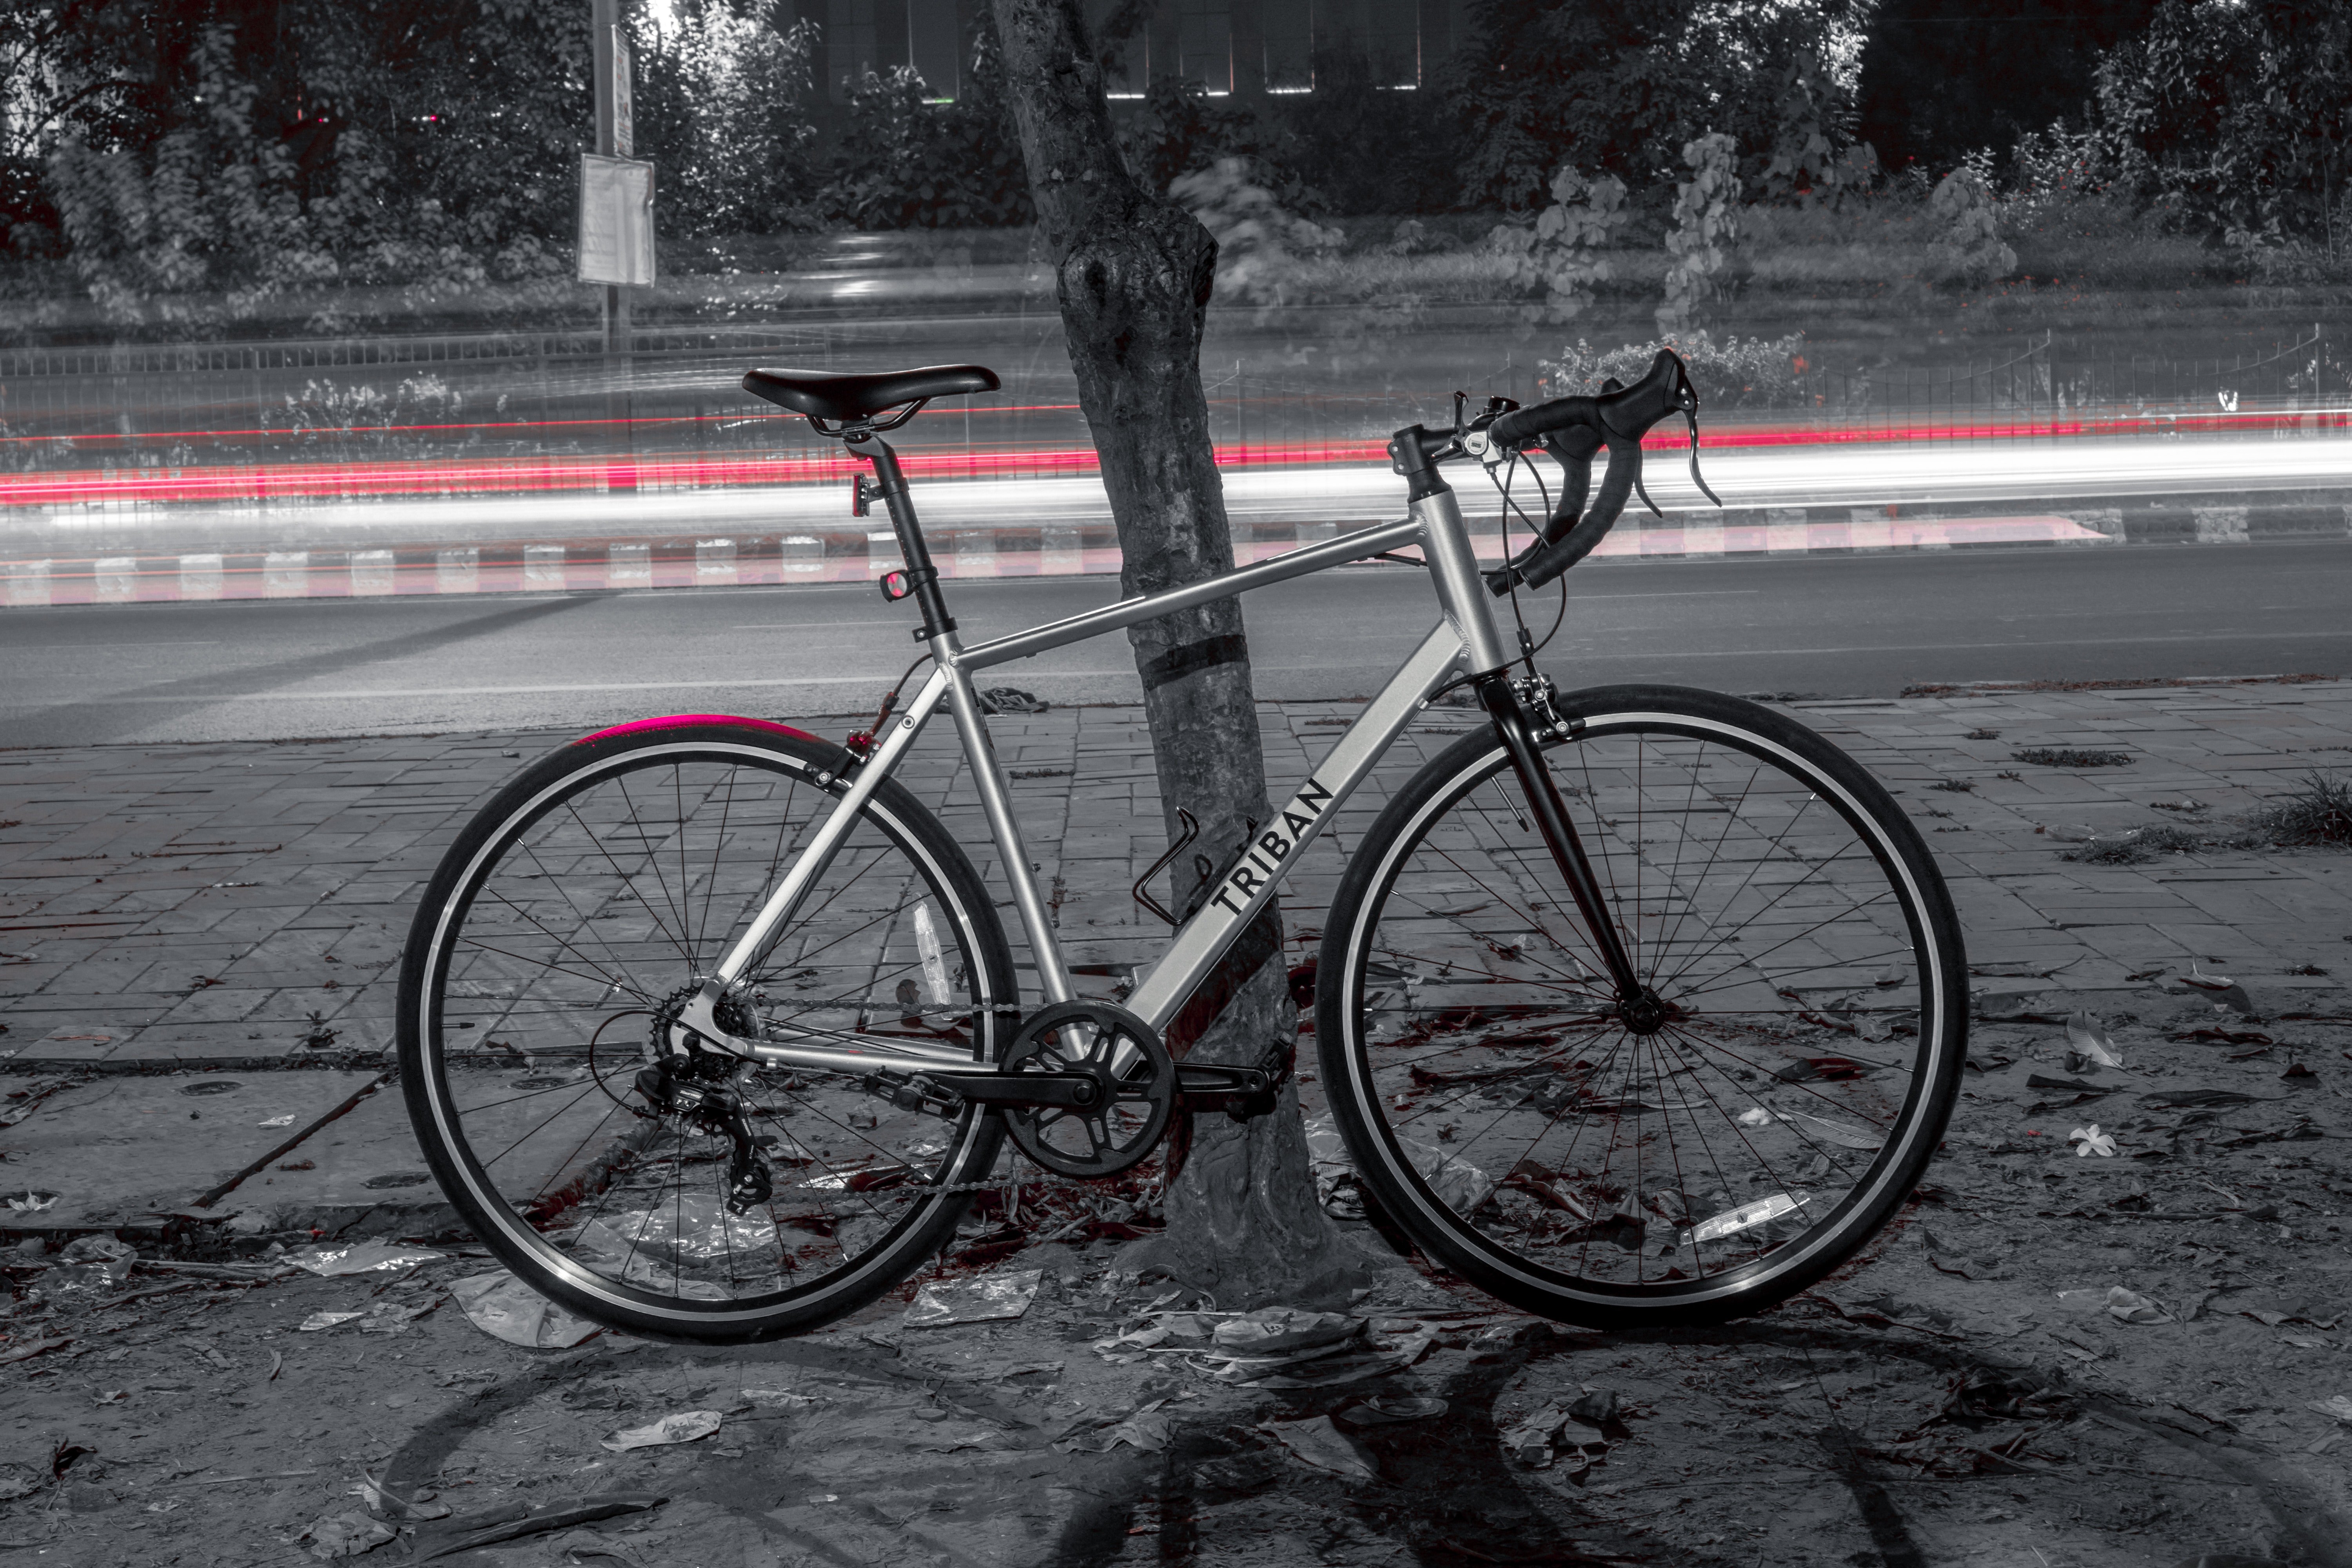 Triban road bike leaning on a tree